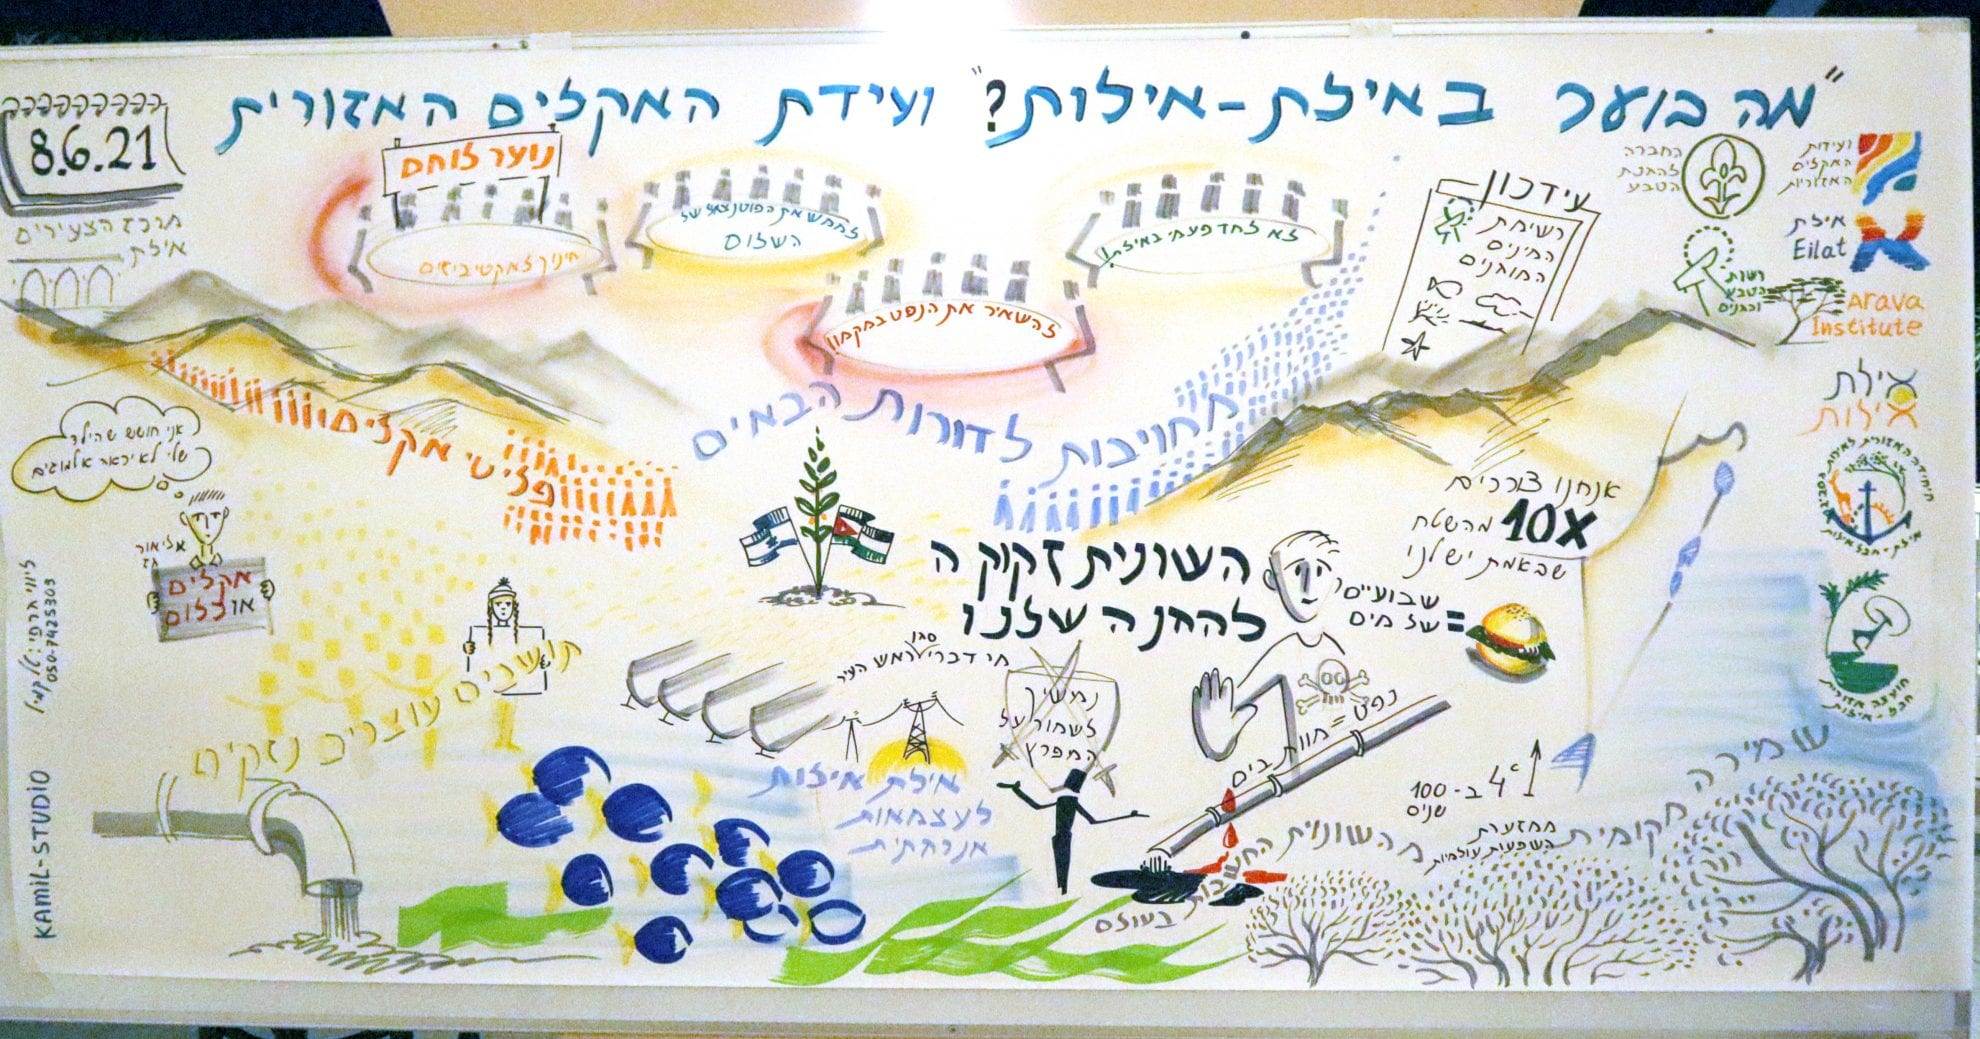 graphic summary of proceedings by Tal Kamil